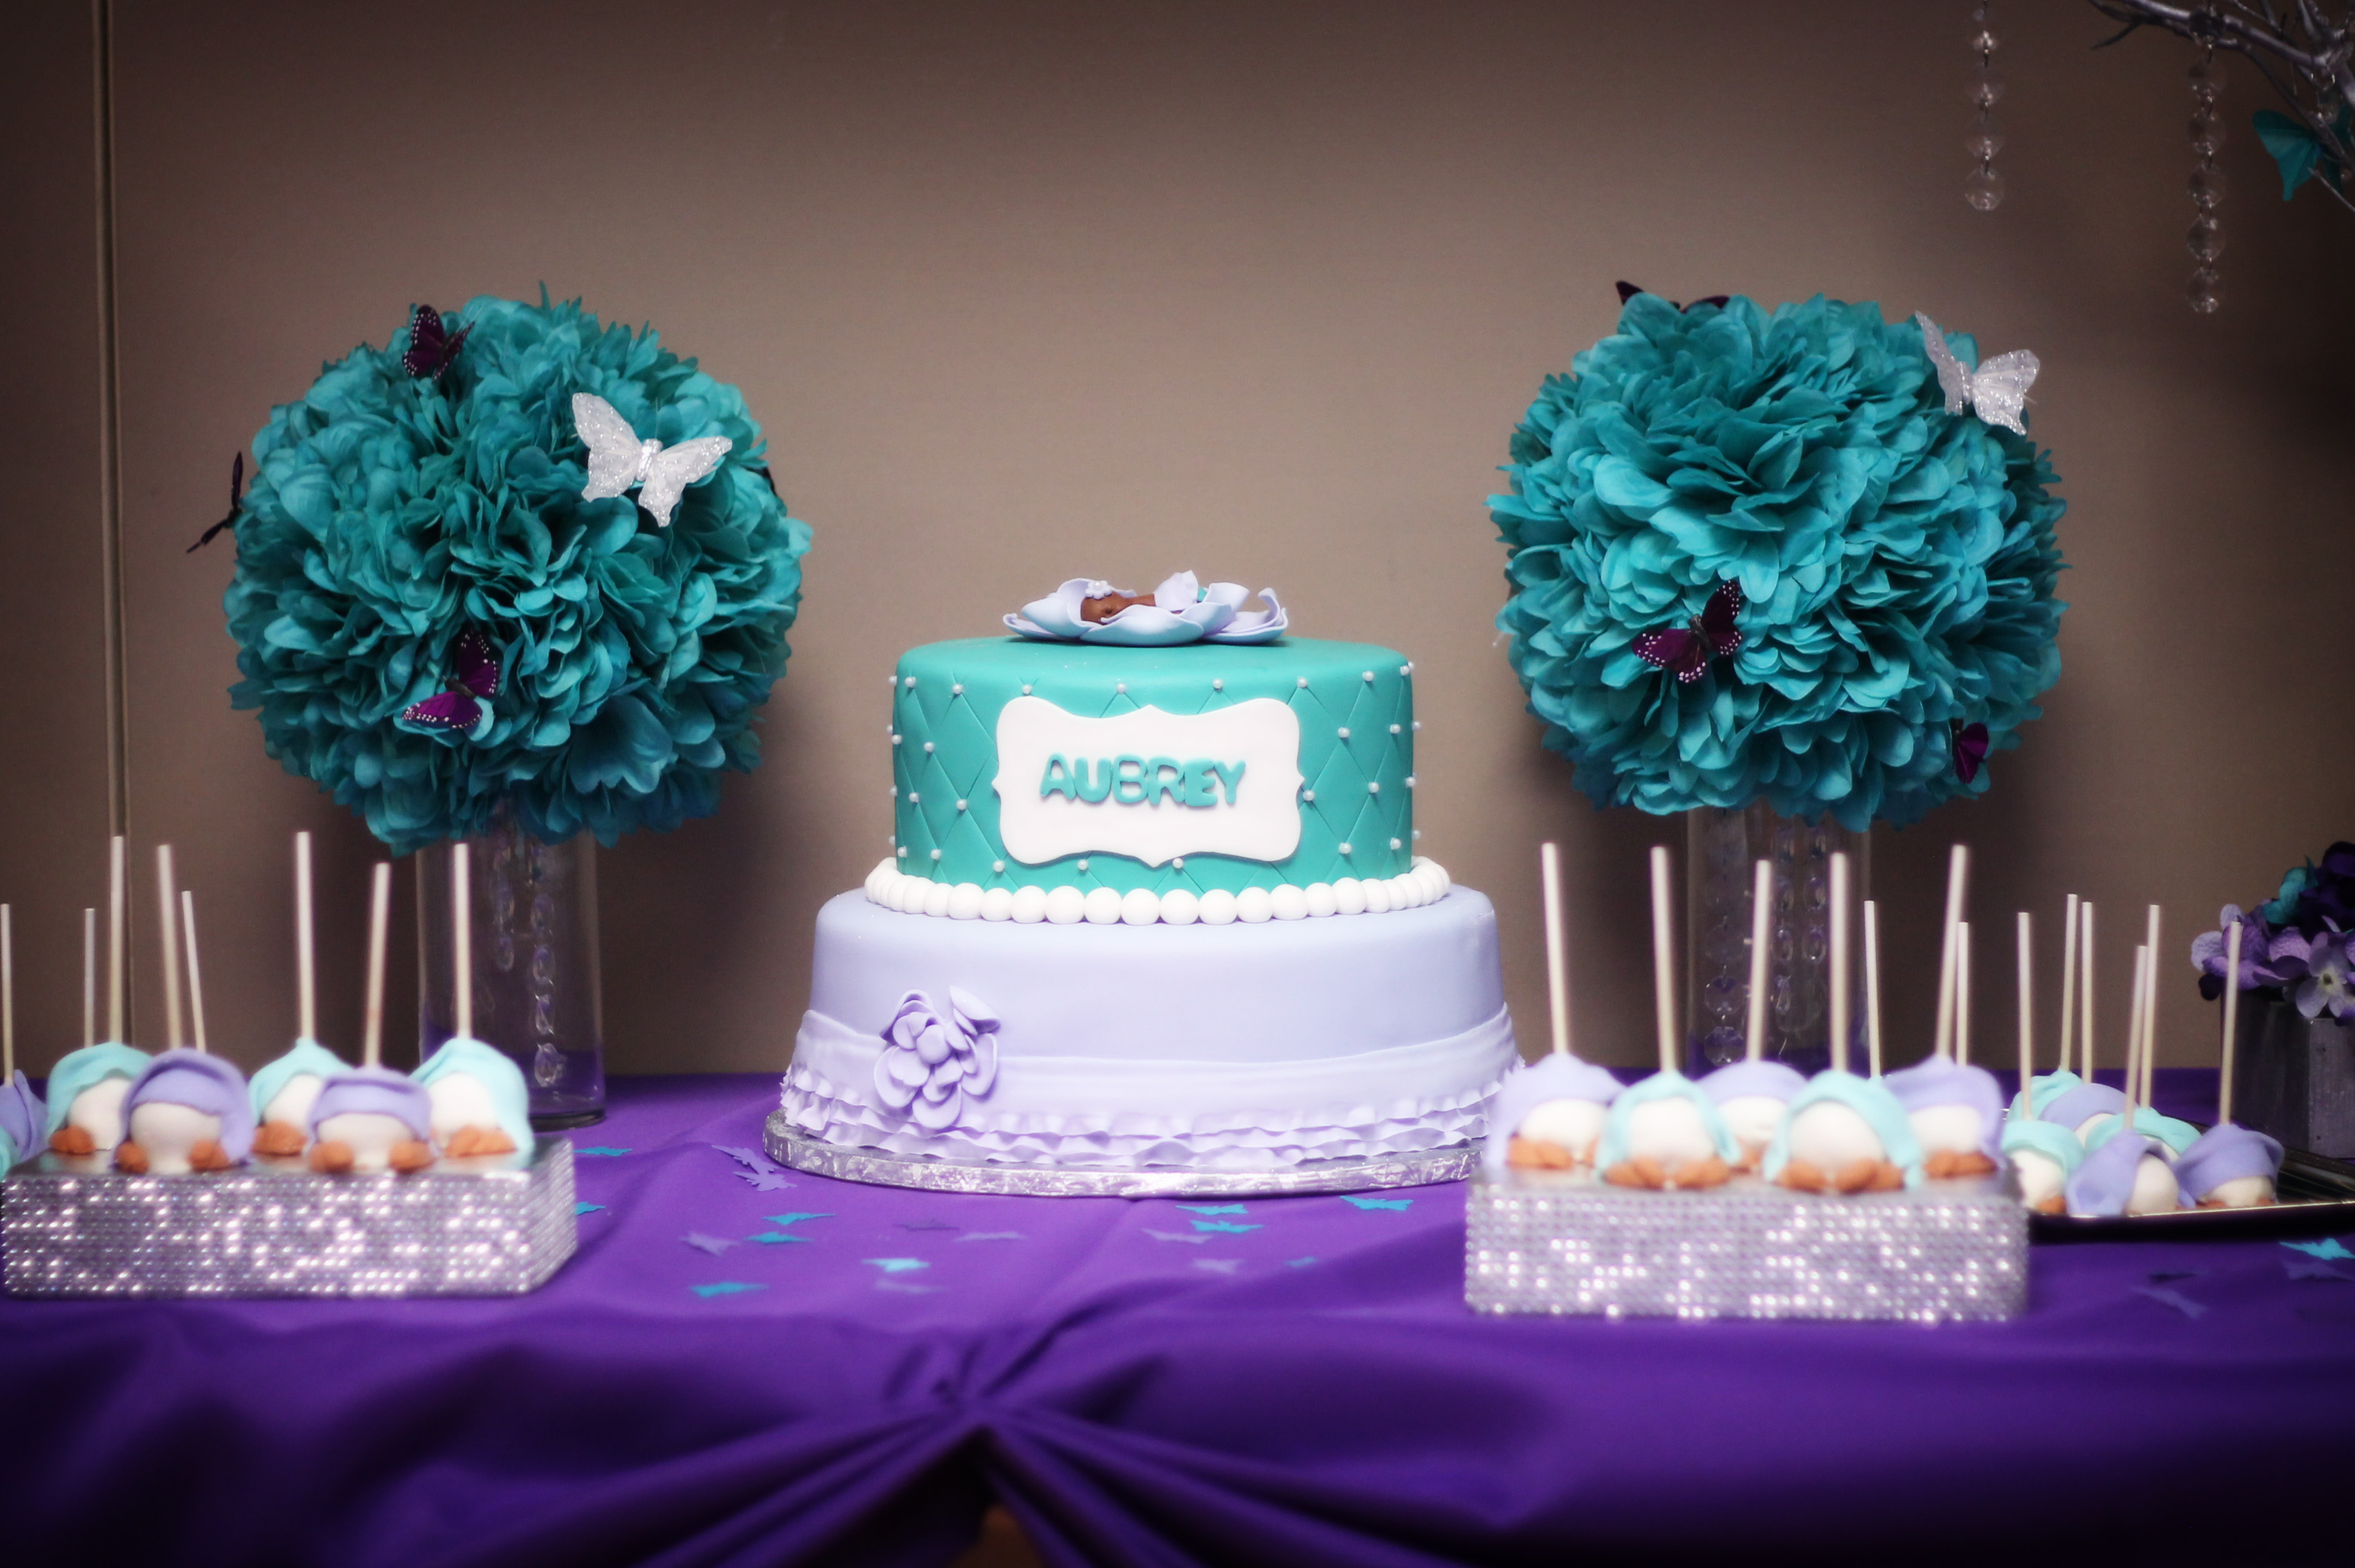 Lilac & Turquoise Cake